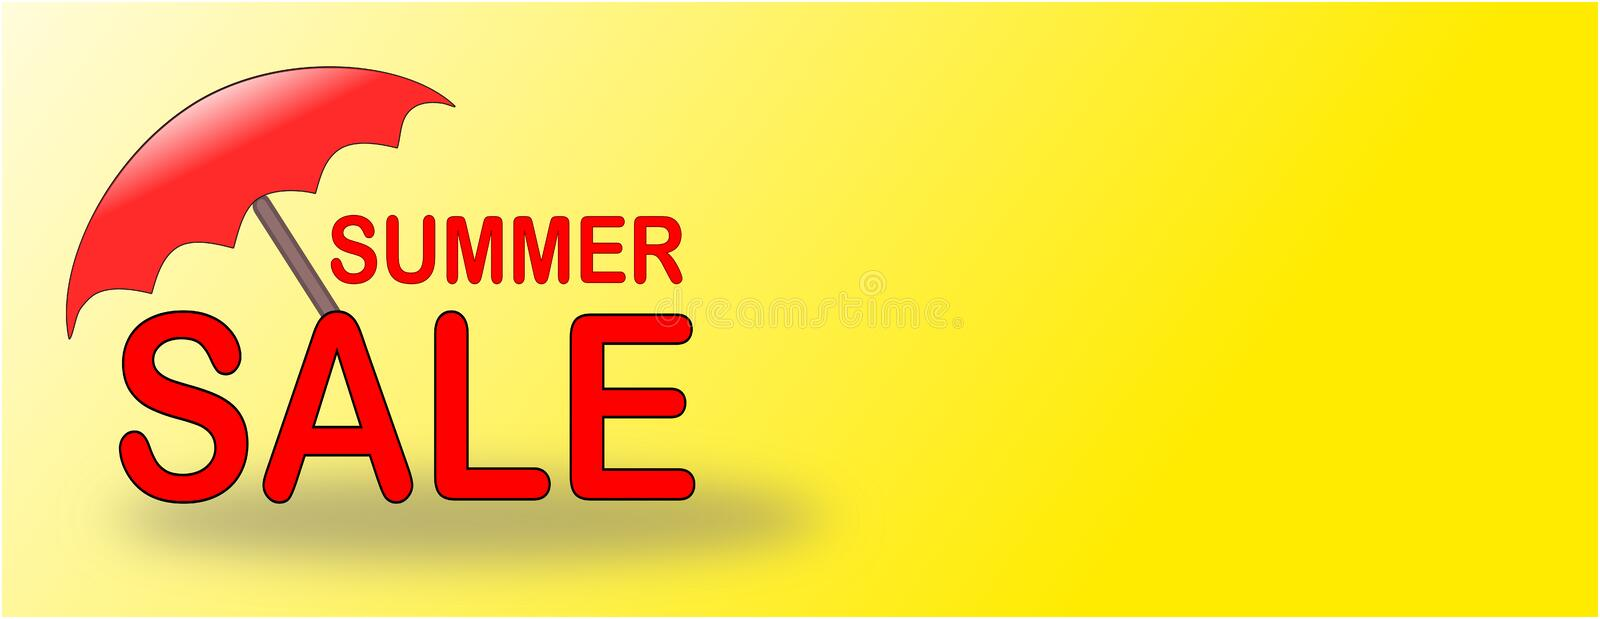 Summer Sale banner with red beach umbrella royalty free stock image